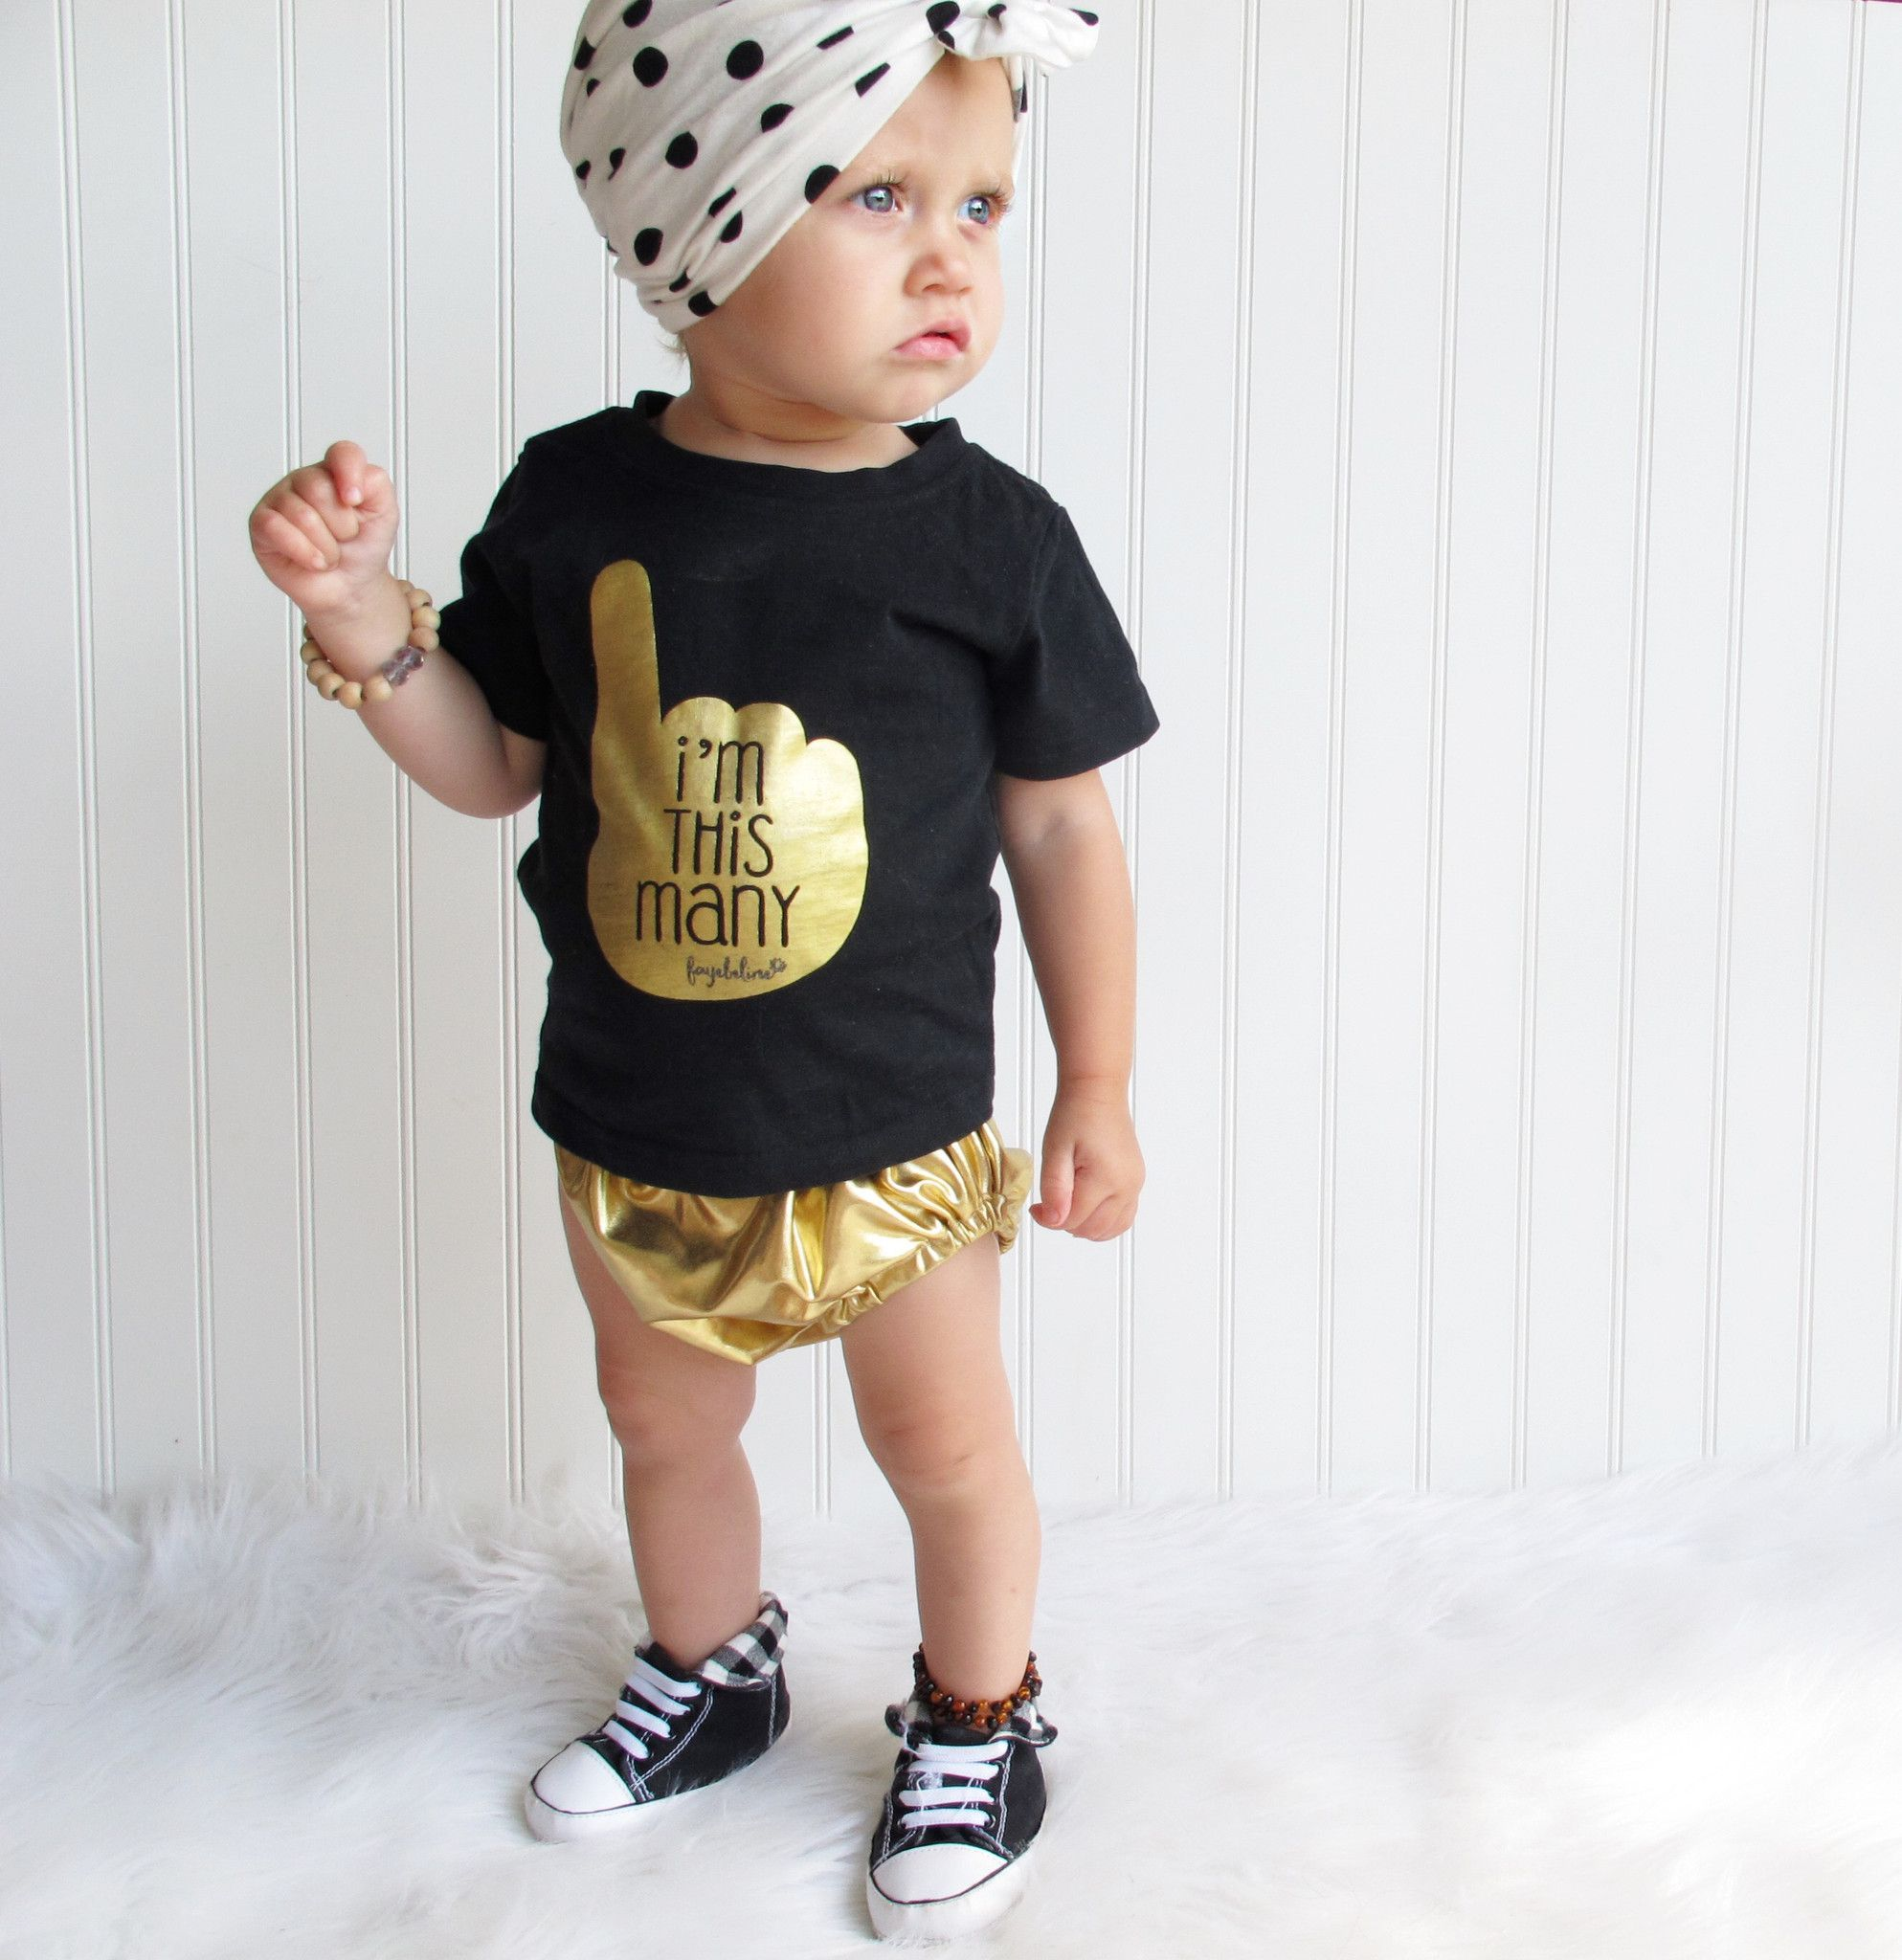 Birthday Outfits For Toddler Boy